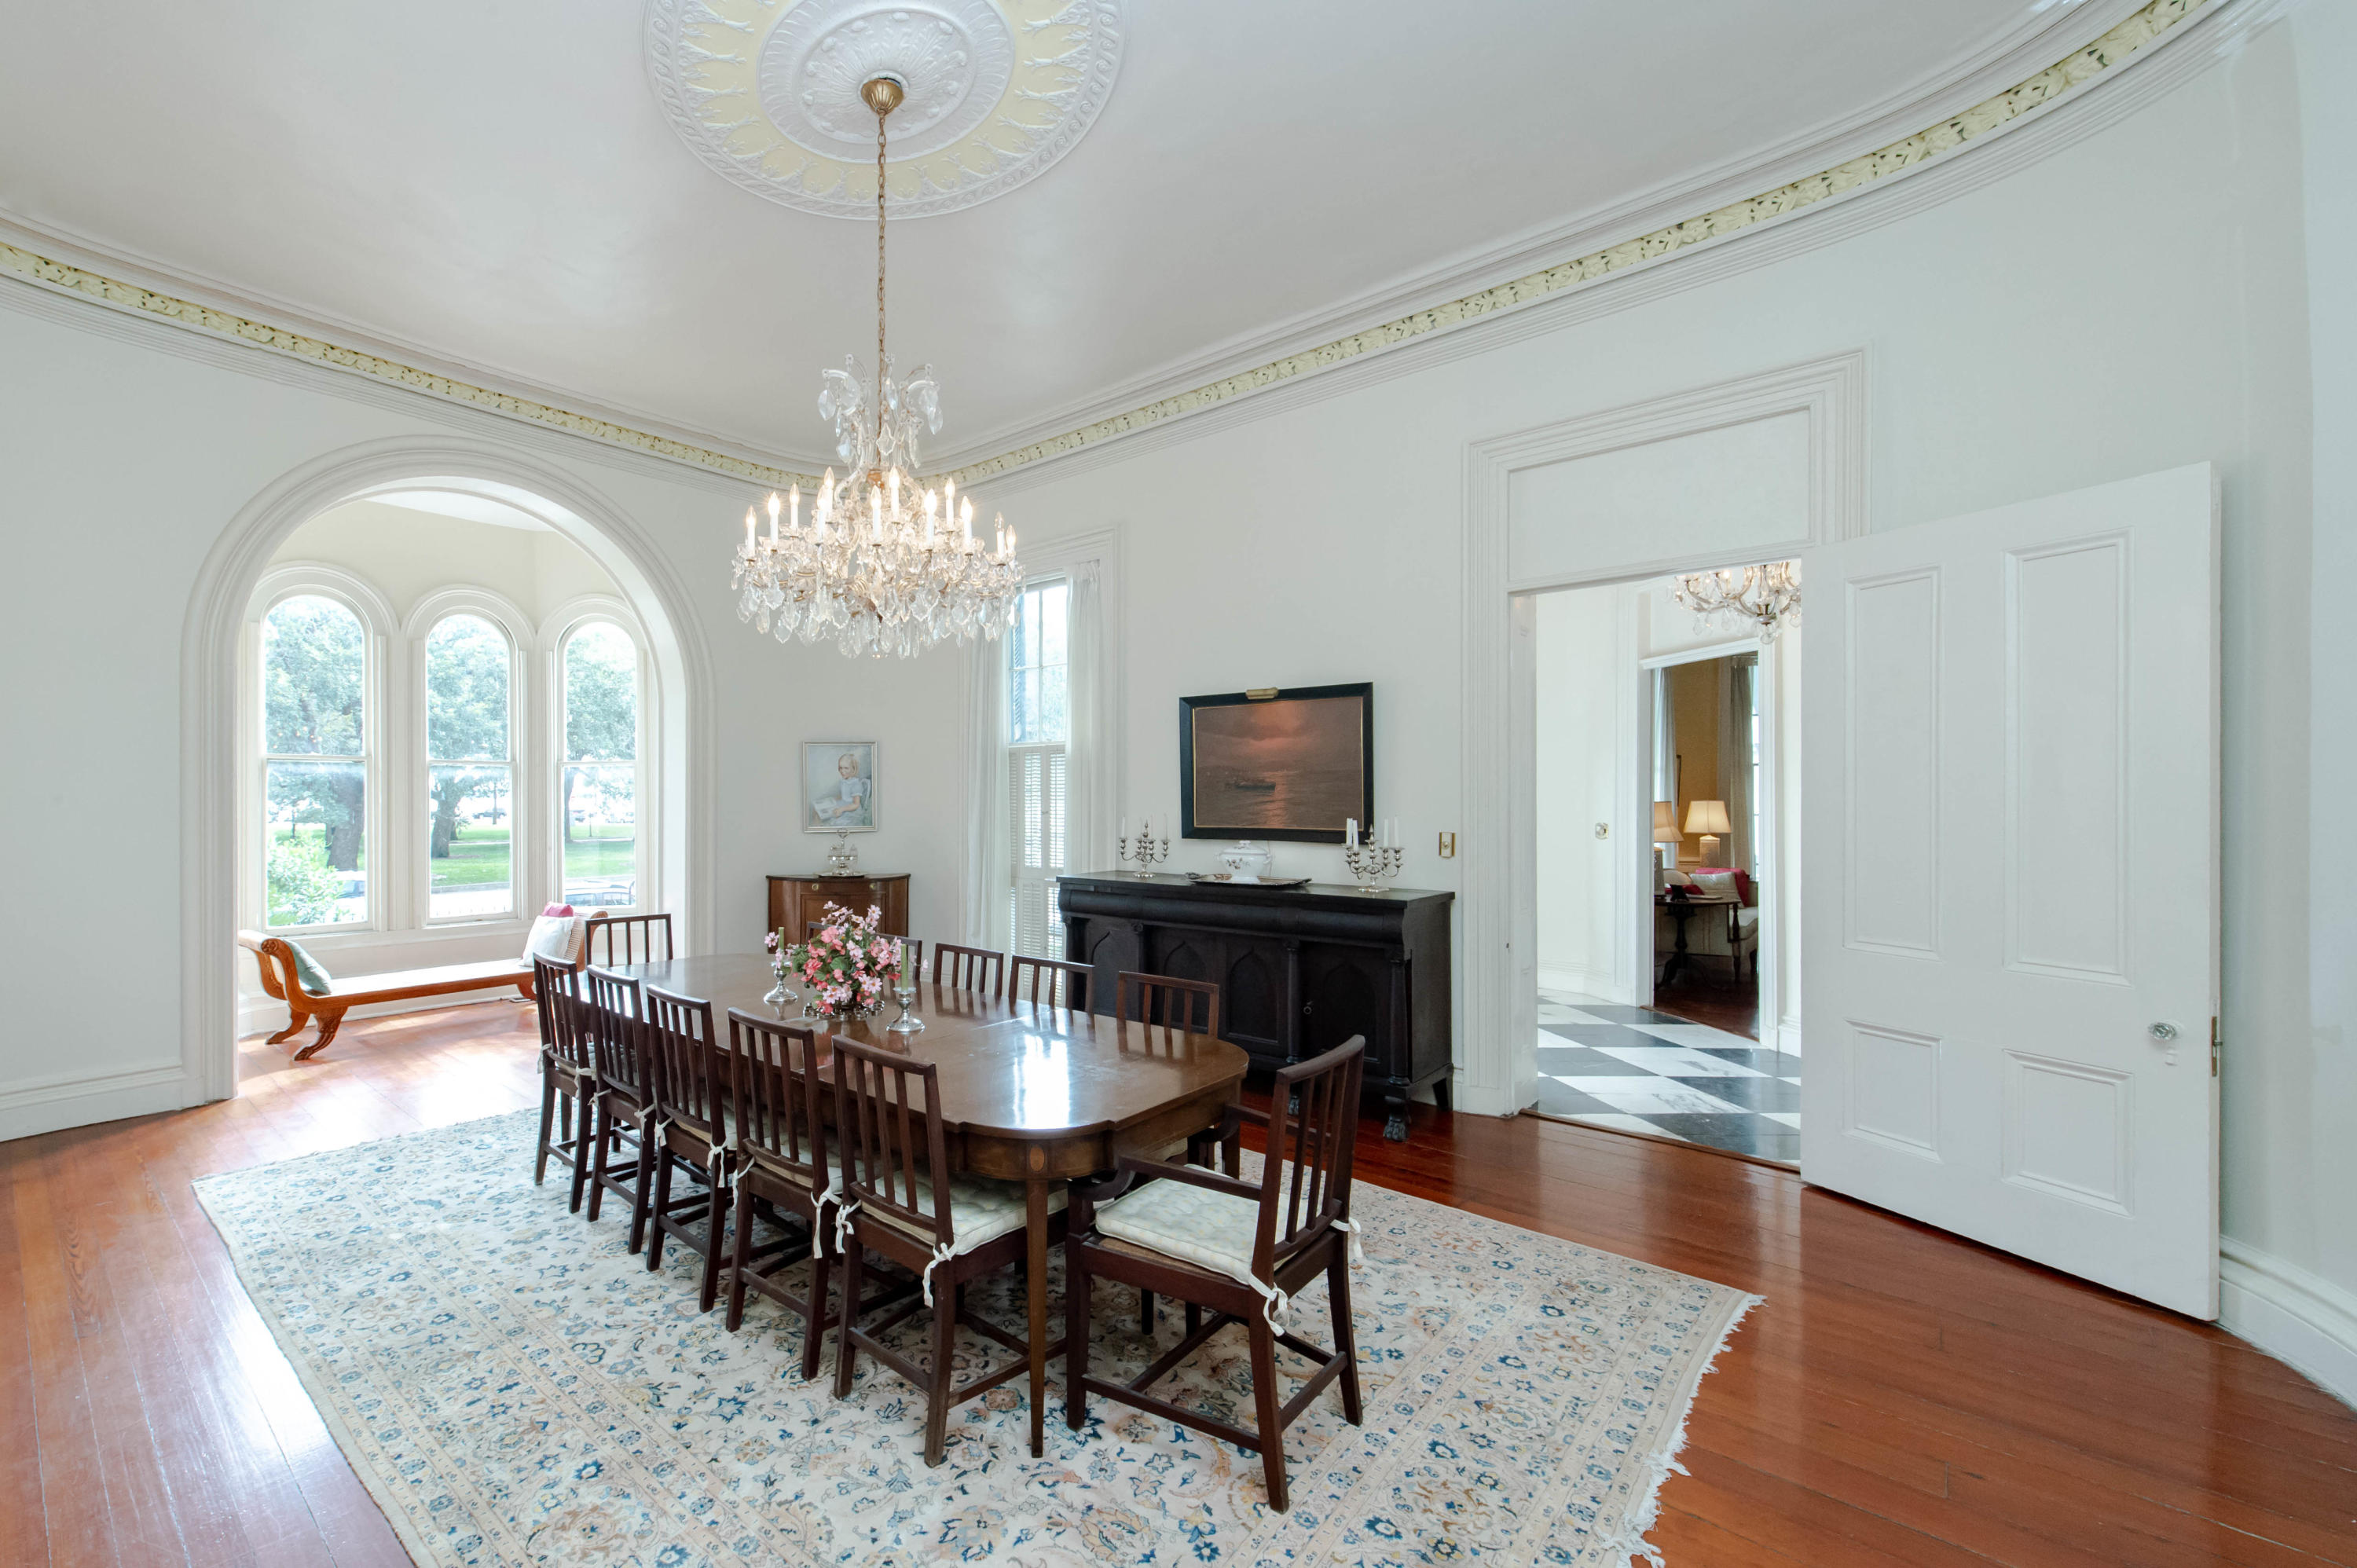 South of Broad Homes For Sale - 26 South Battery, Charleston, SC - 16